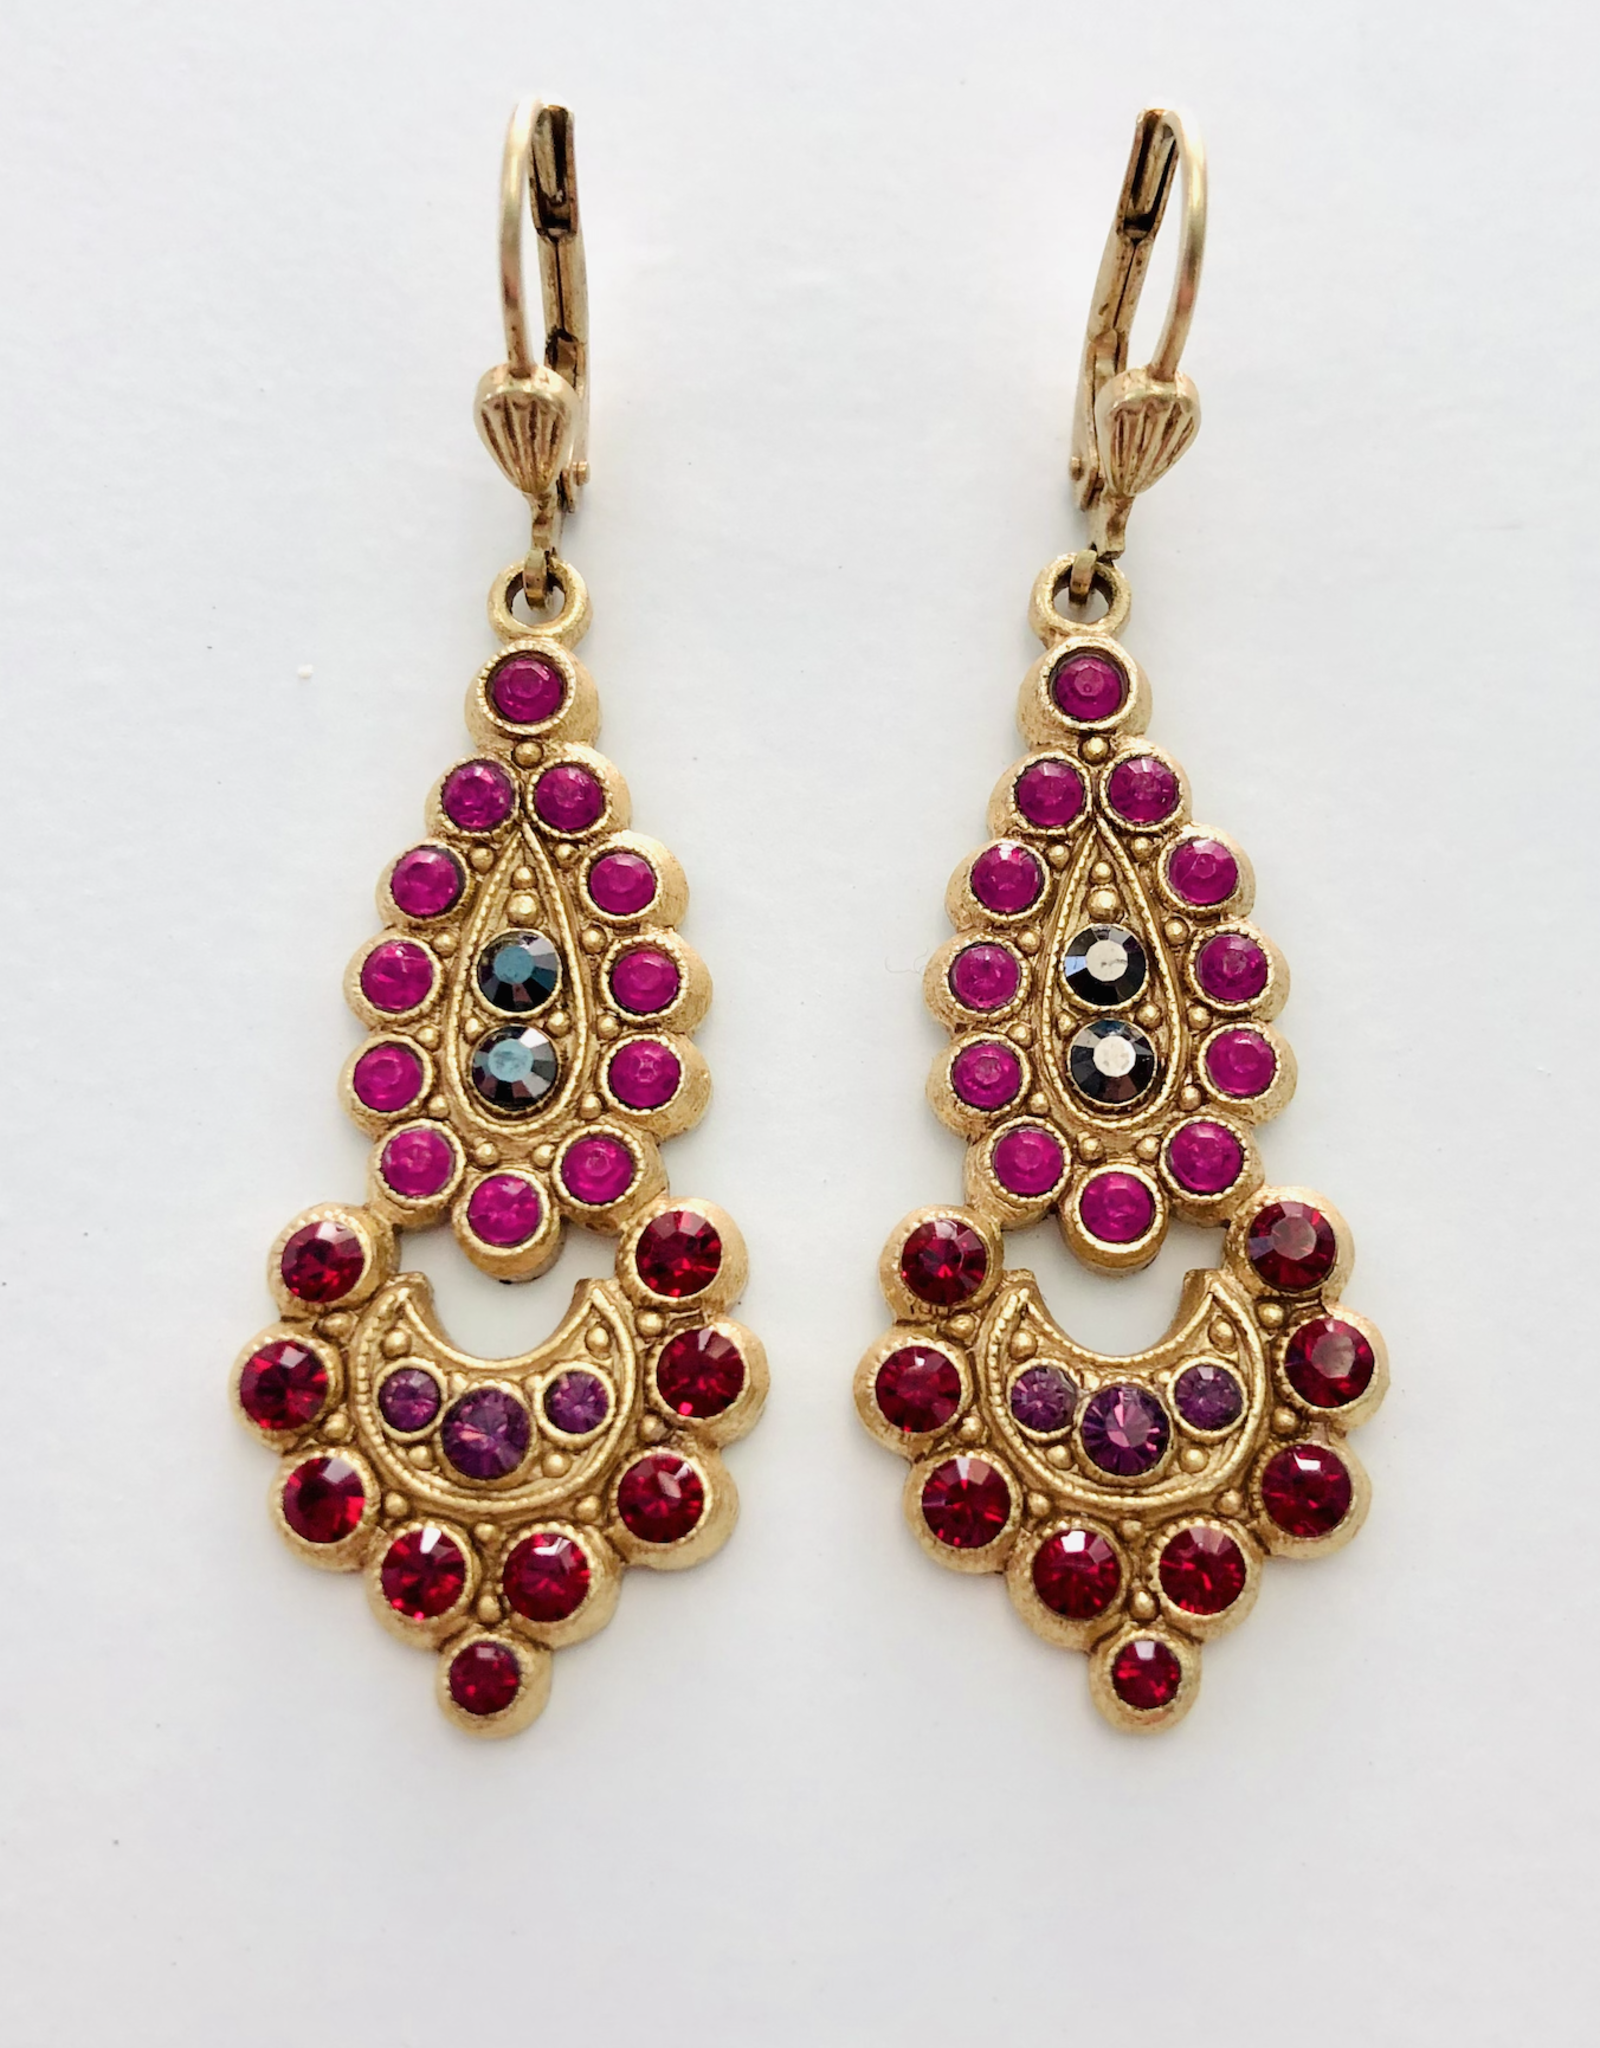 LA VIE PARISIENNE INC EARRING PINK AND RED RHINESTONES ON GOLD